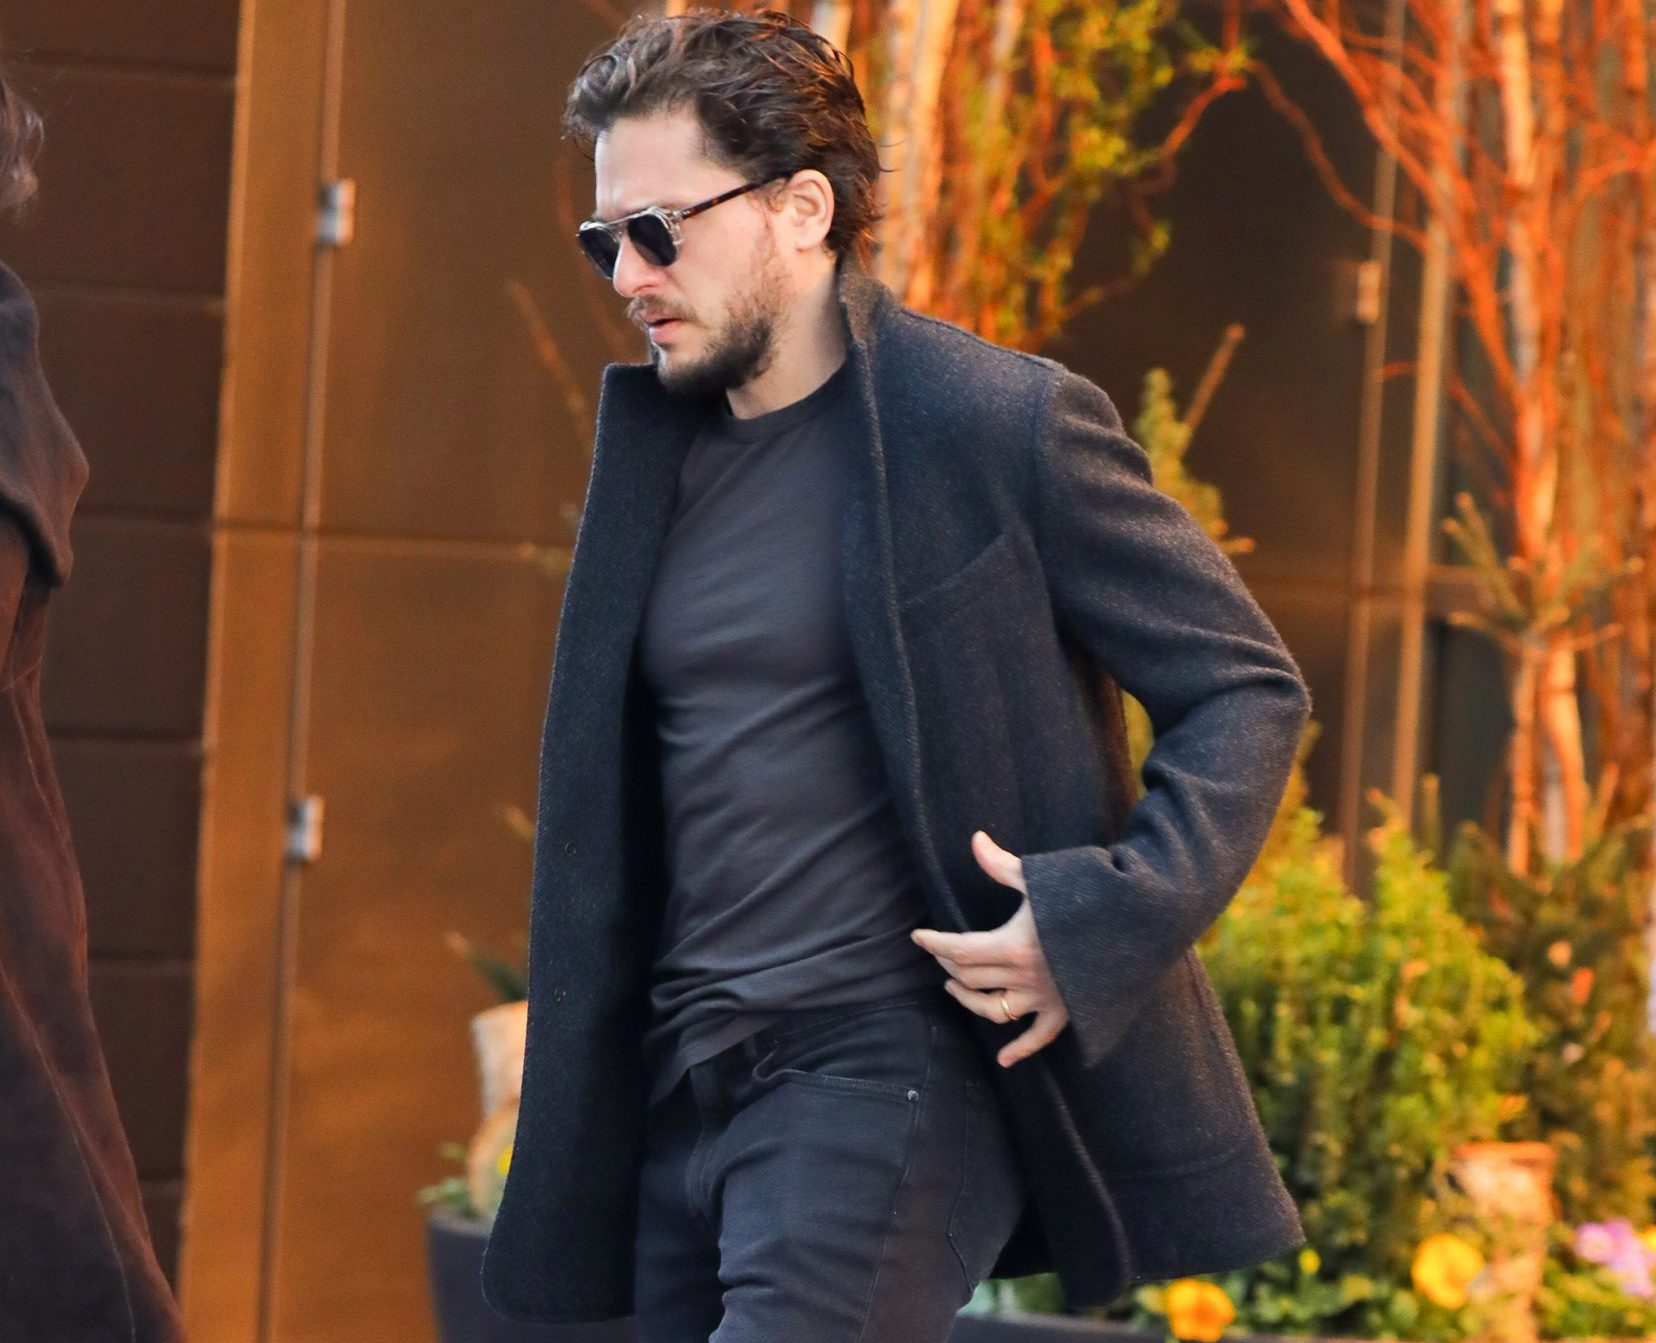 Game Of Thrones' Kit Harington keeps his head down amid bleak Jon Snow death theory